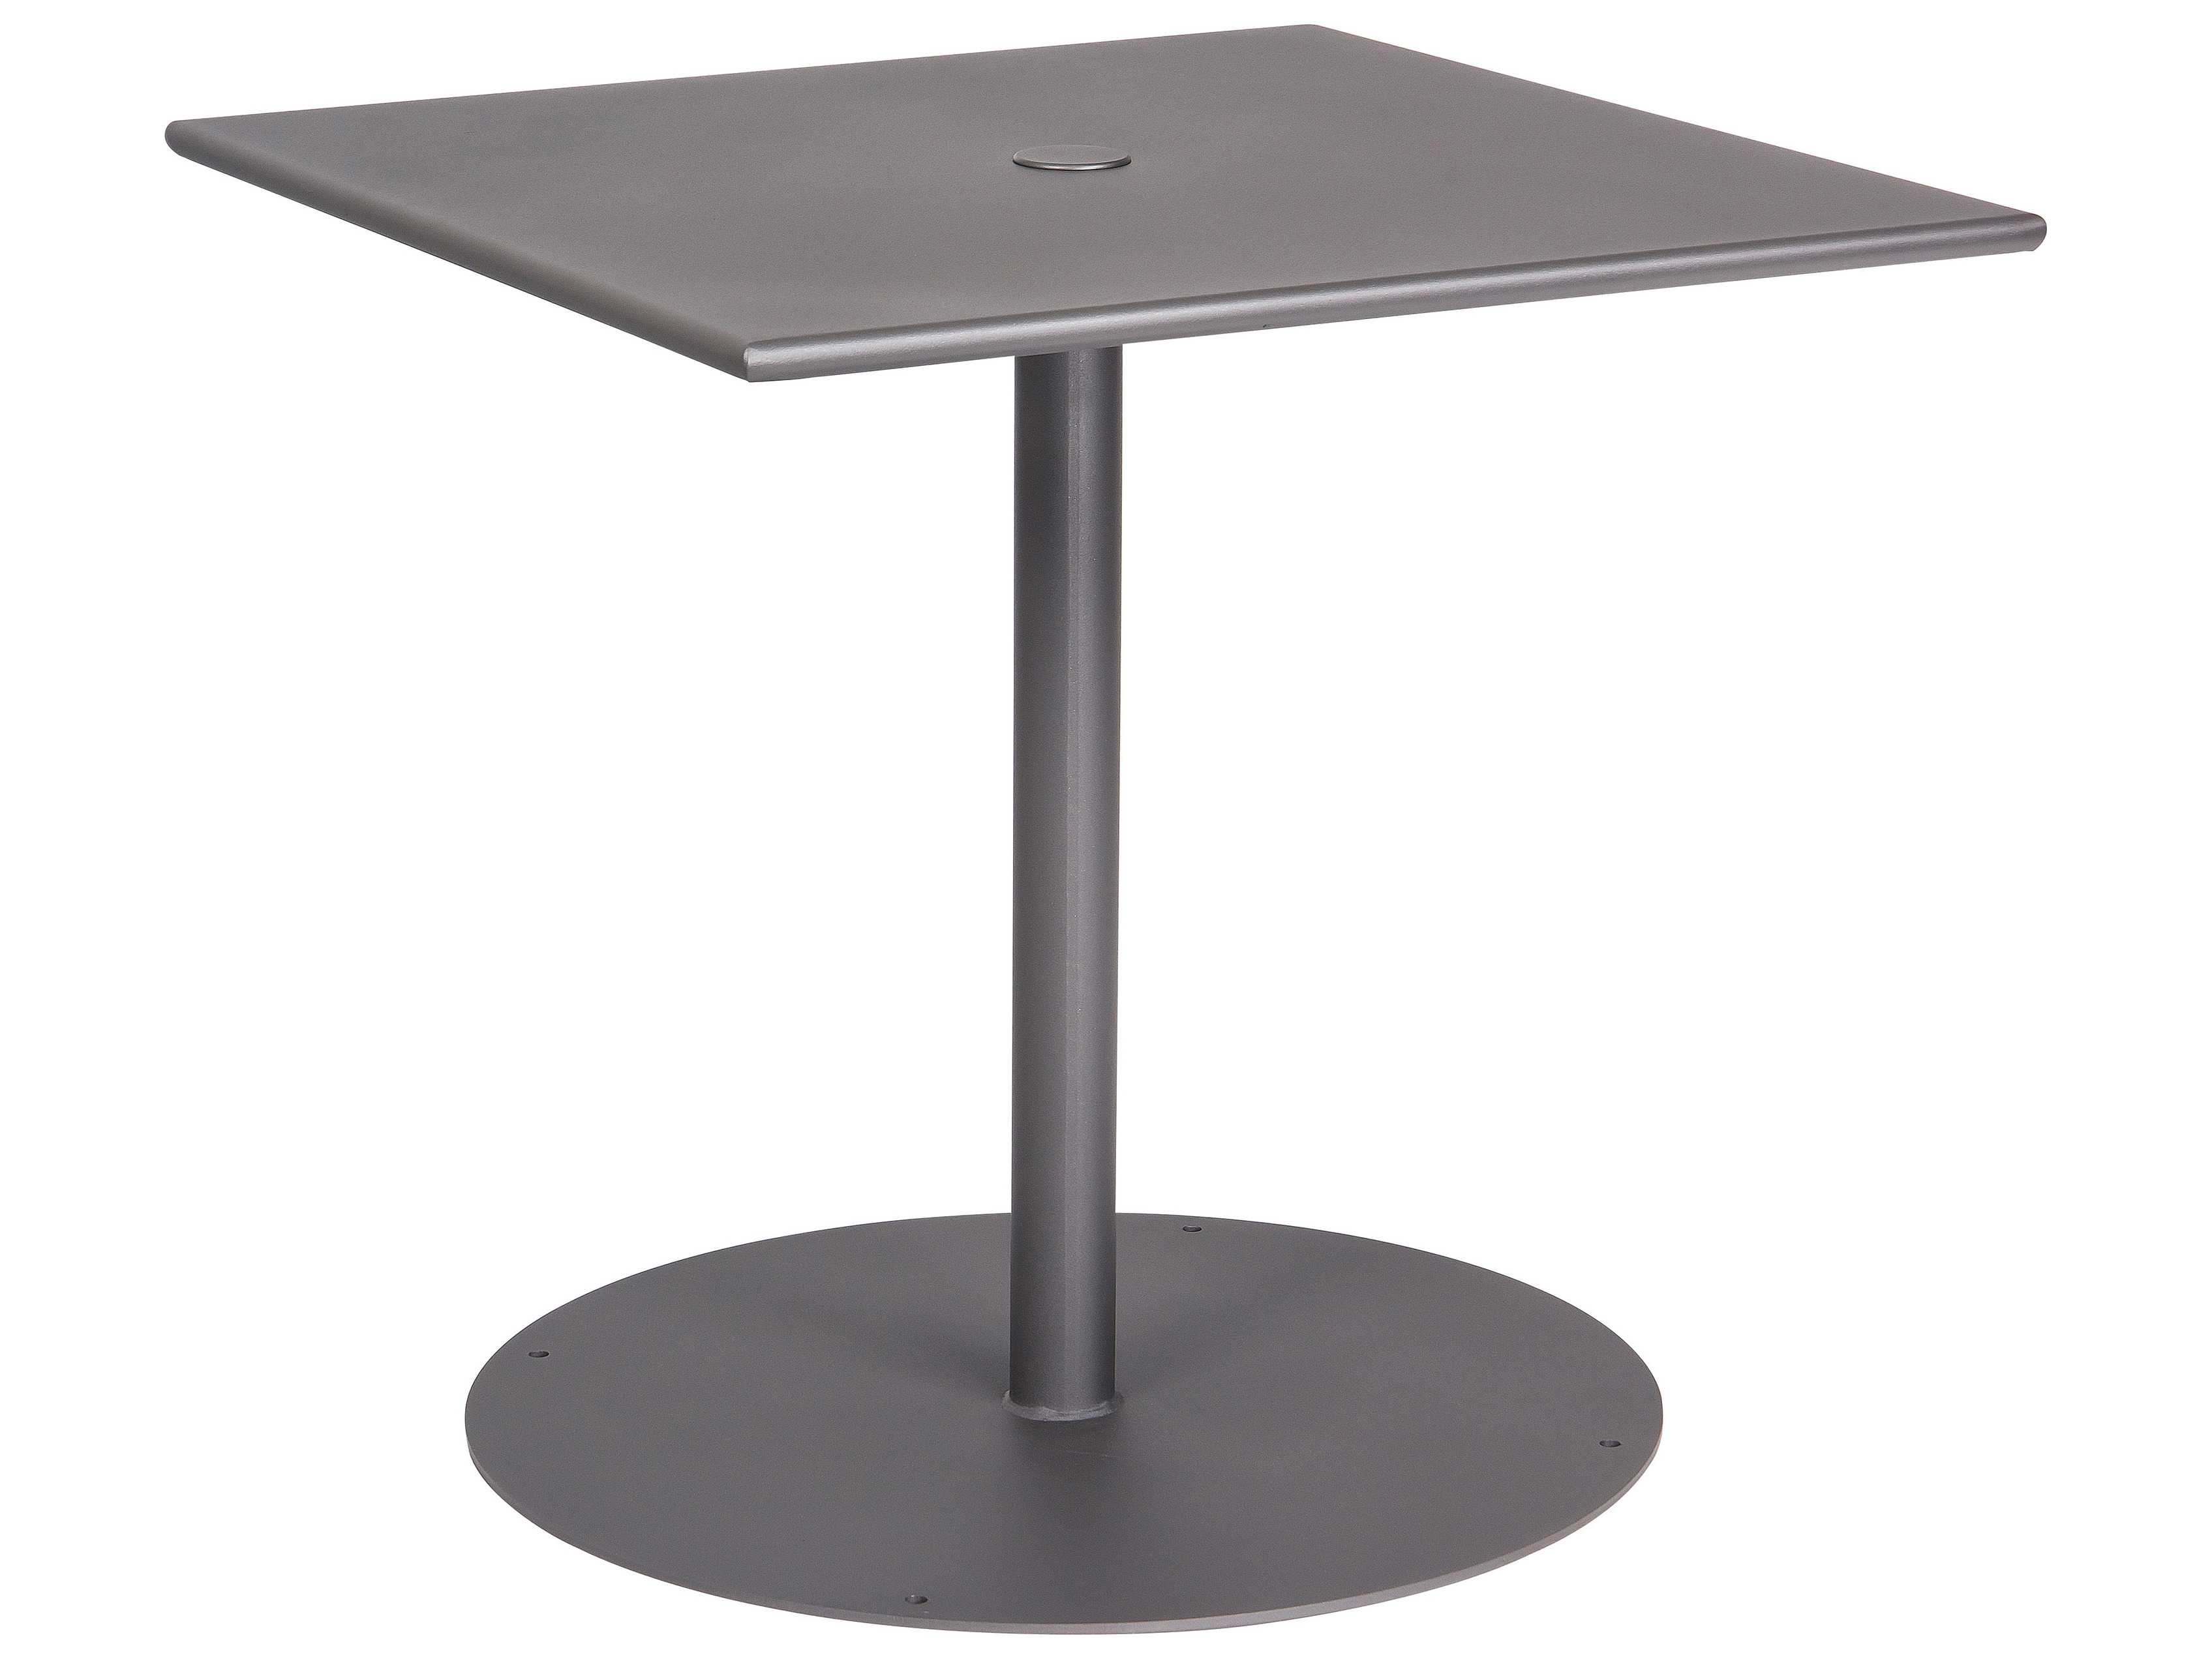 Wrought iron 30 square bistro table with pedestal base 13l3sd30